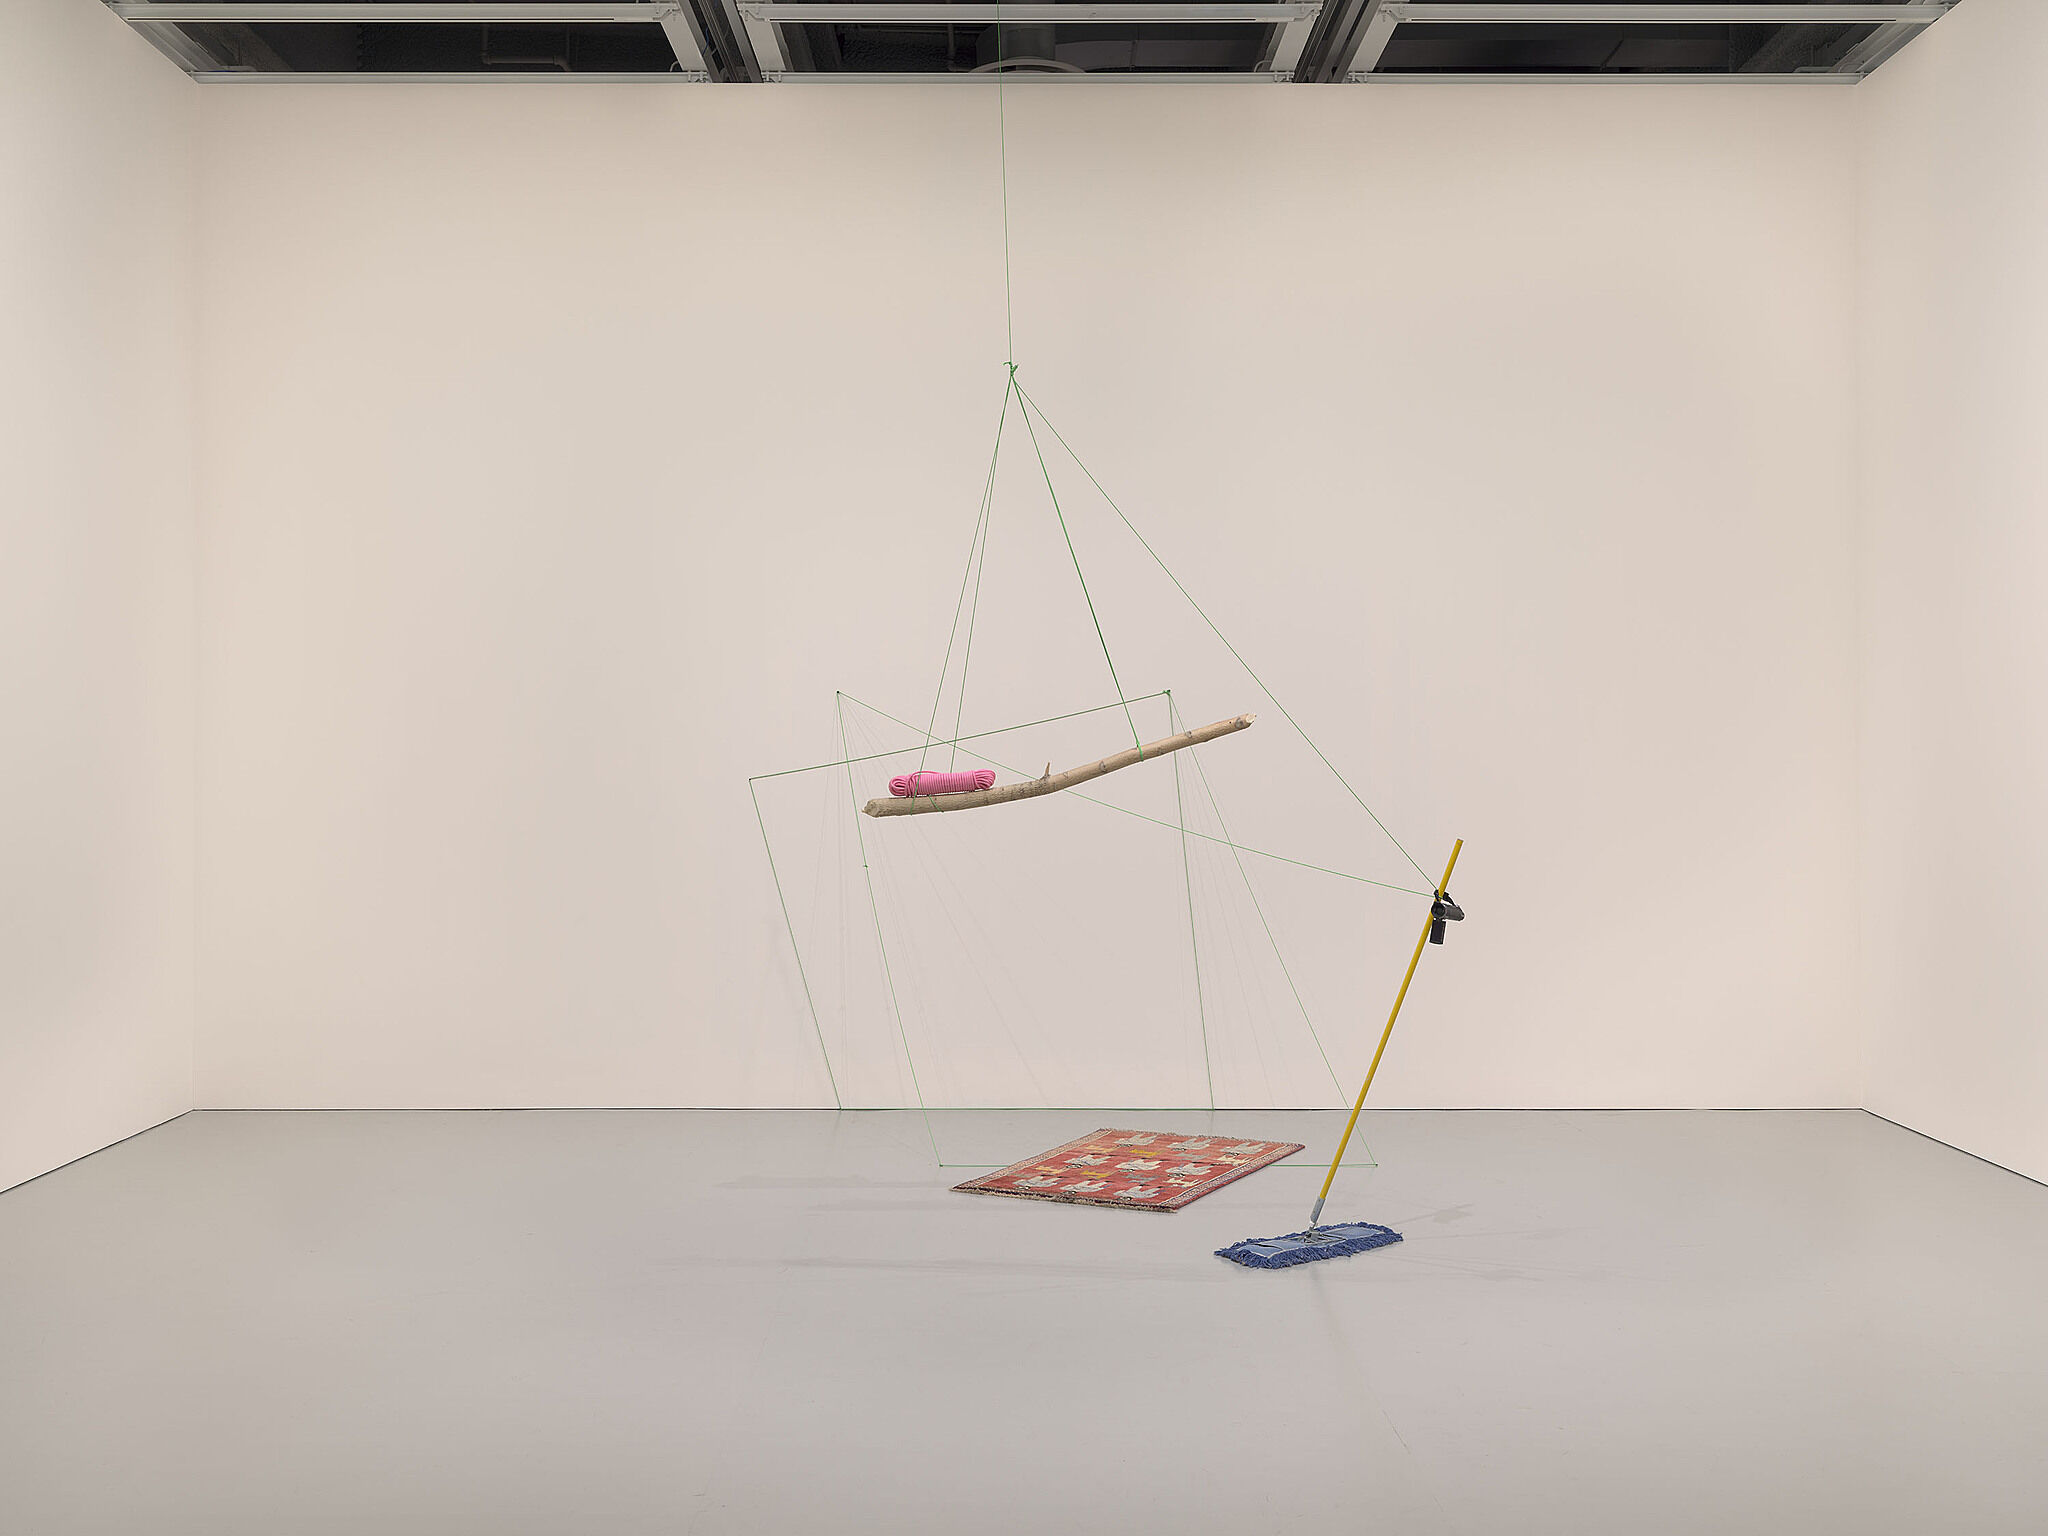 A gallery with a single sculpture made of a rug, a mop, and a stick tied to the ceiling with string.